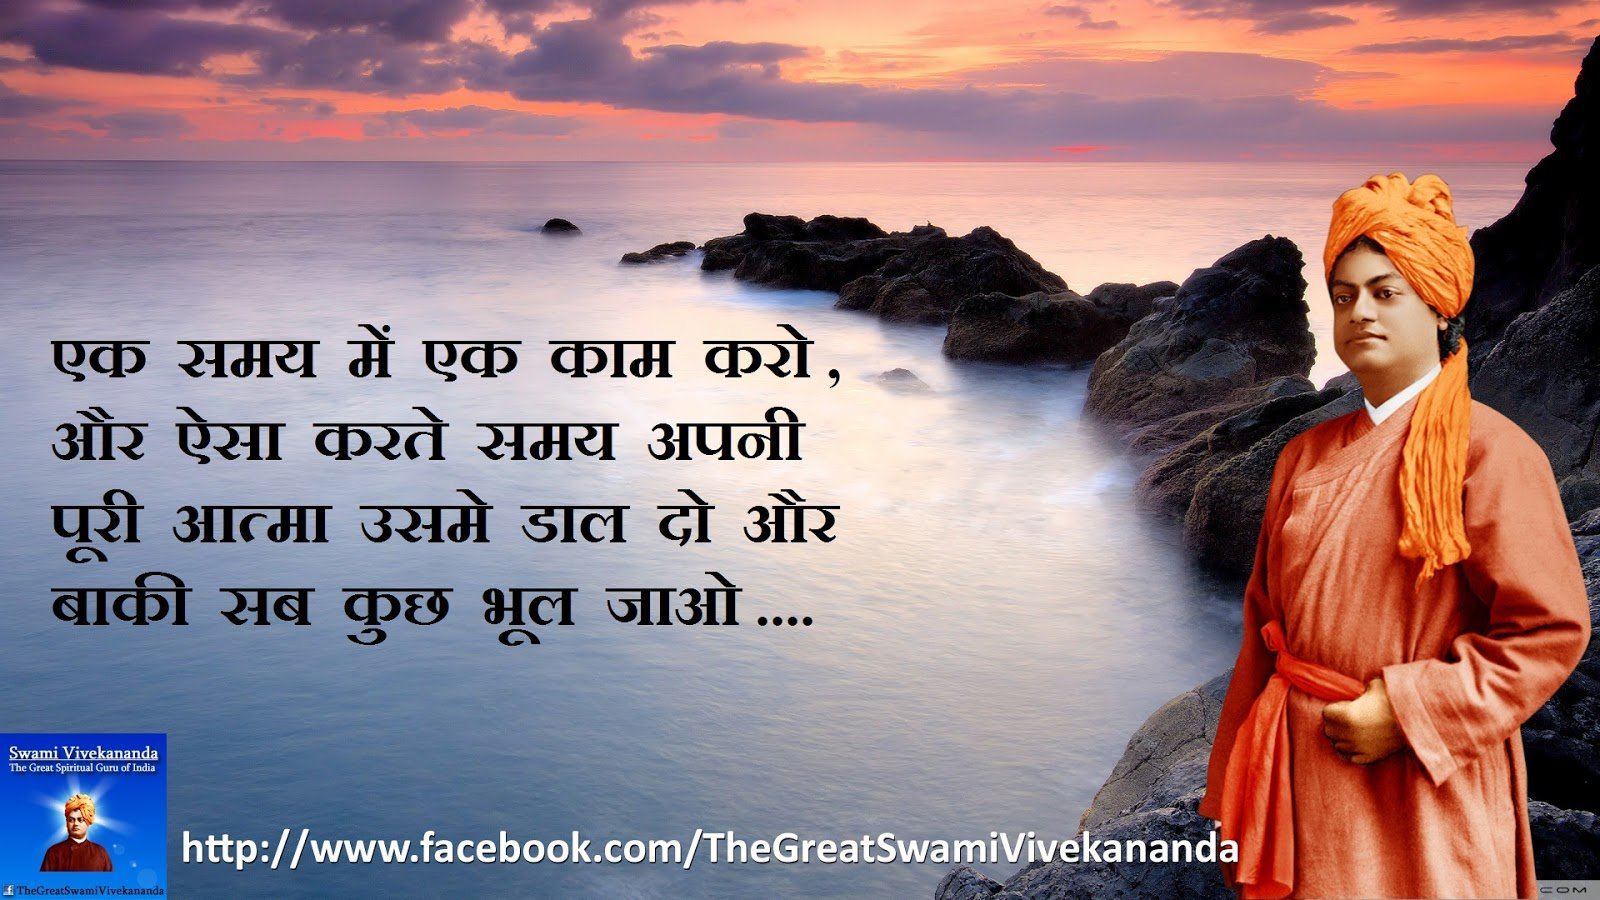 Swami Vivekananda Quotes Wallpapers Quotesgram